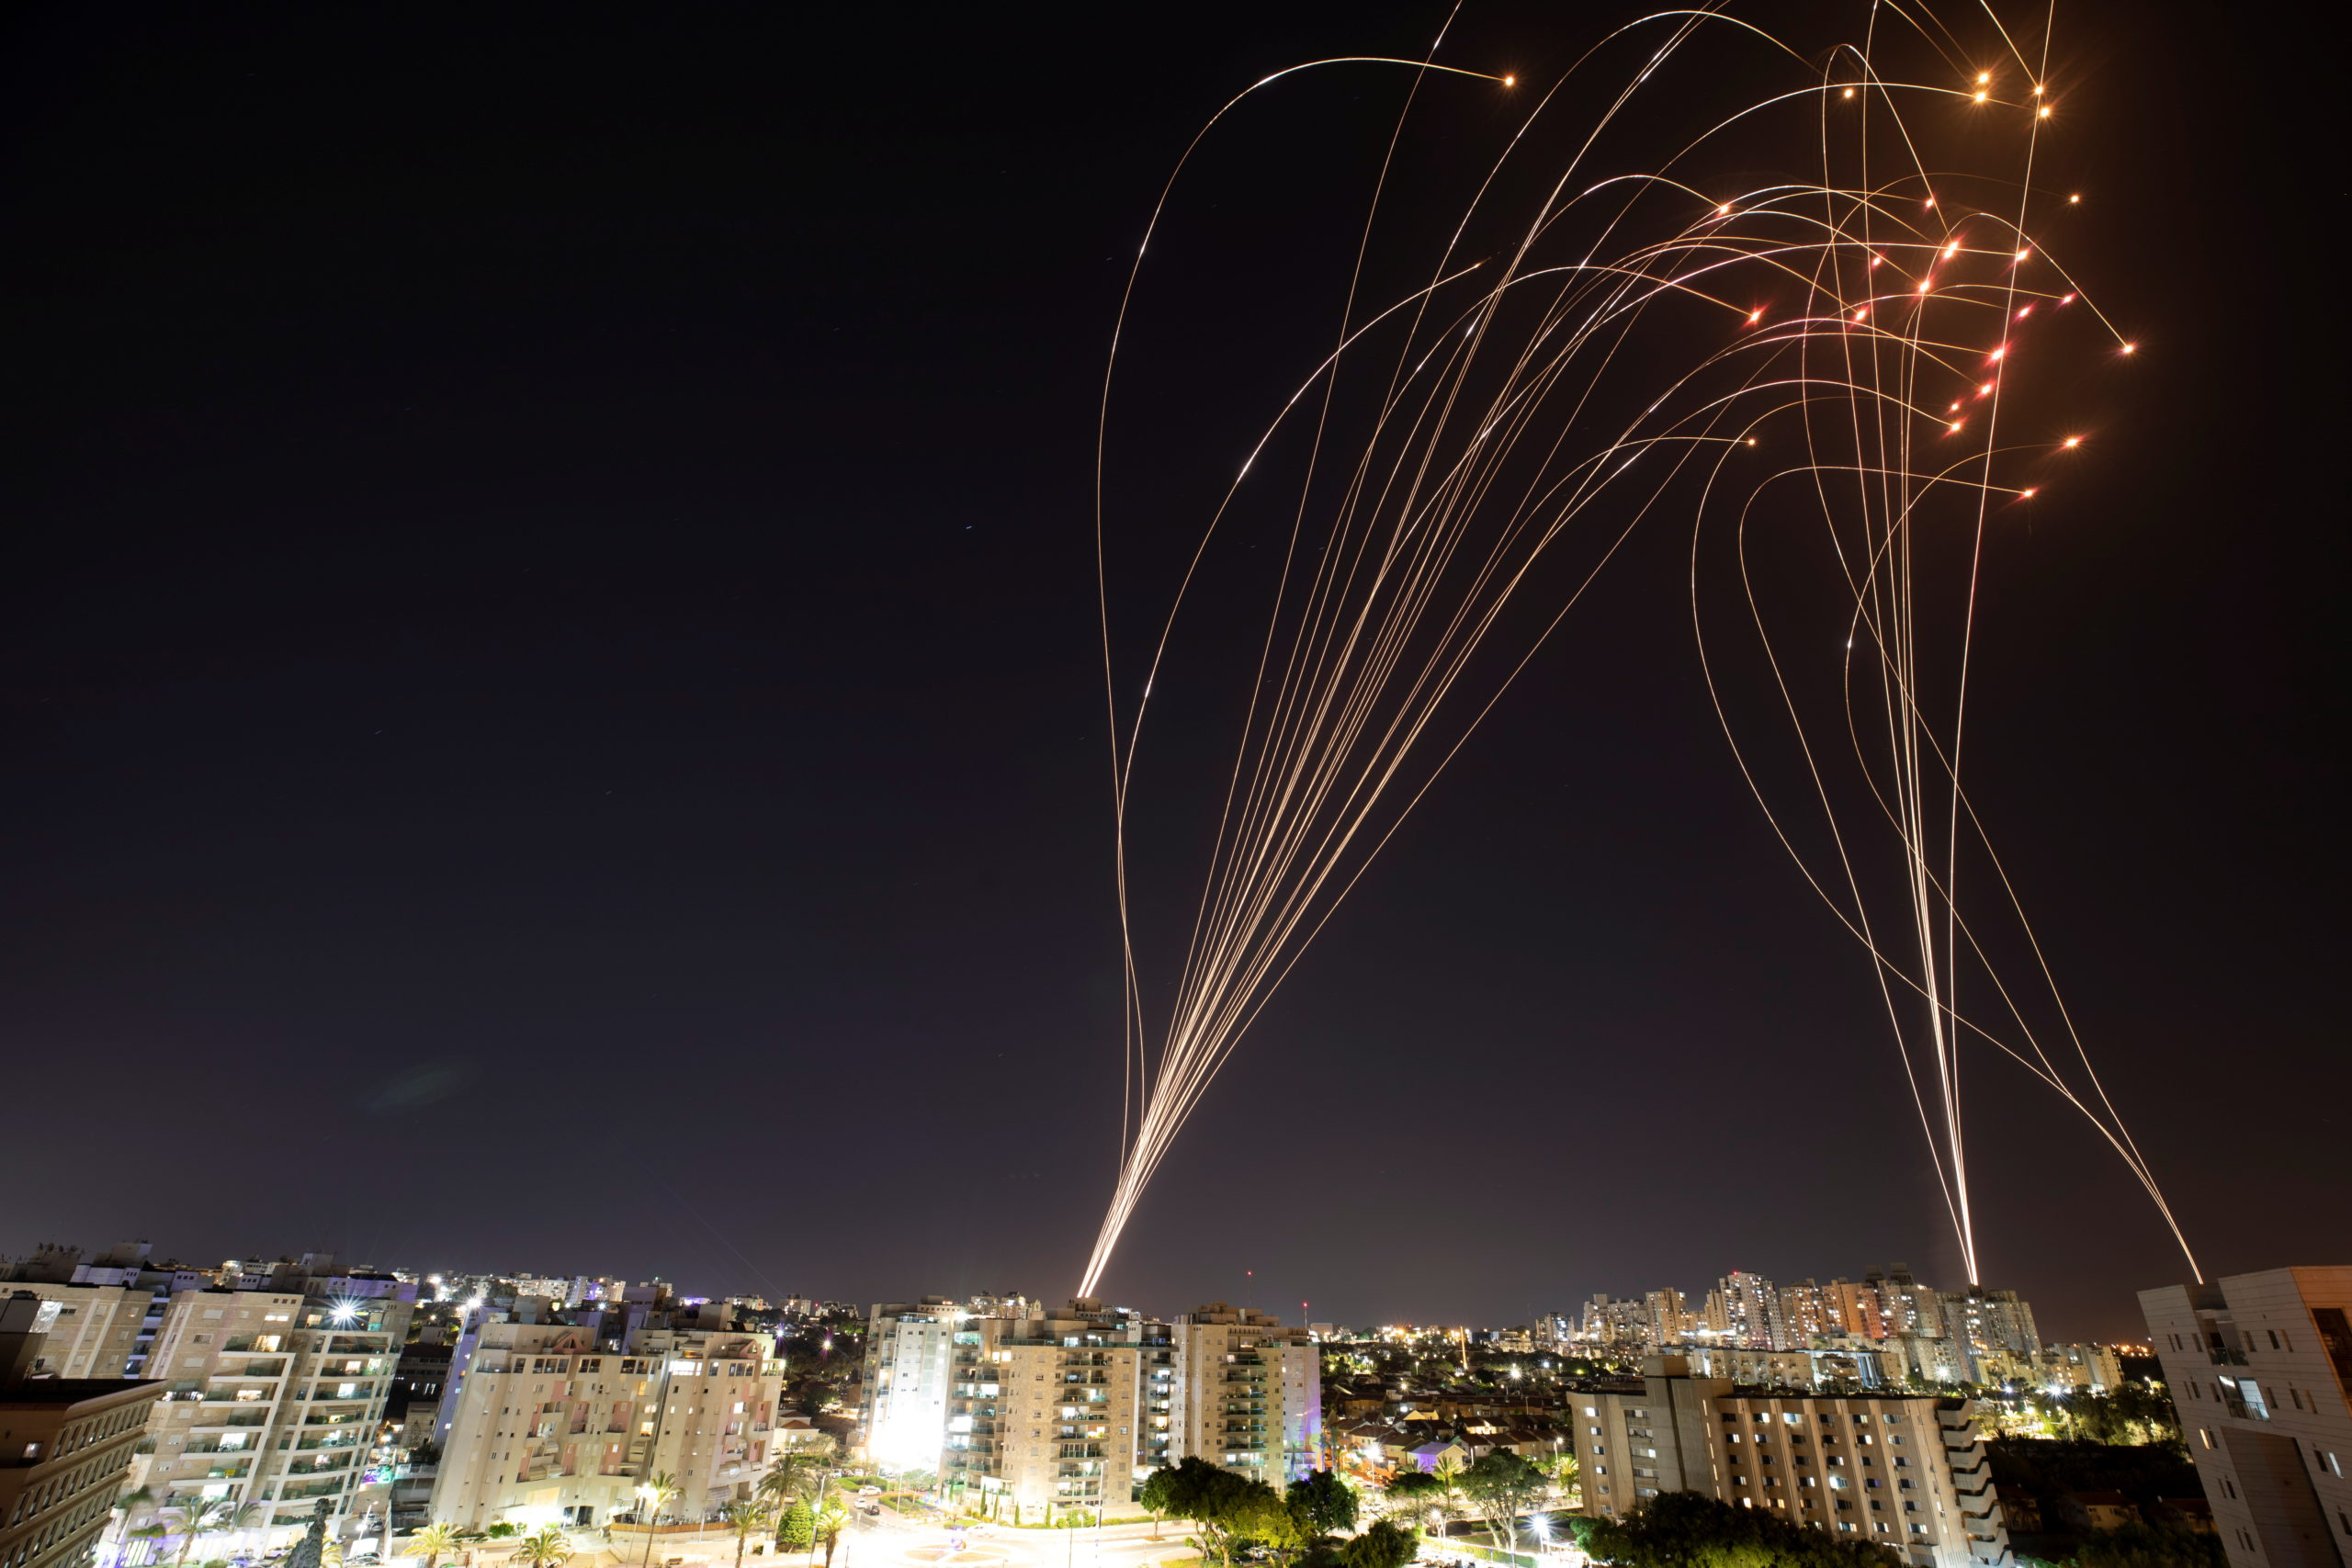 Streaks of light are seen as Israel's Iron Dome anti-missile system intercepts rockets launched from the Gaza Strip towards Israel, as seen from Ashkelon, Israel, May 11, 2021. (REUTERS/Nir Elias)